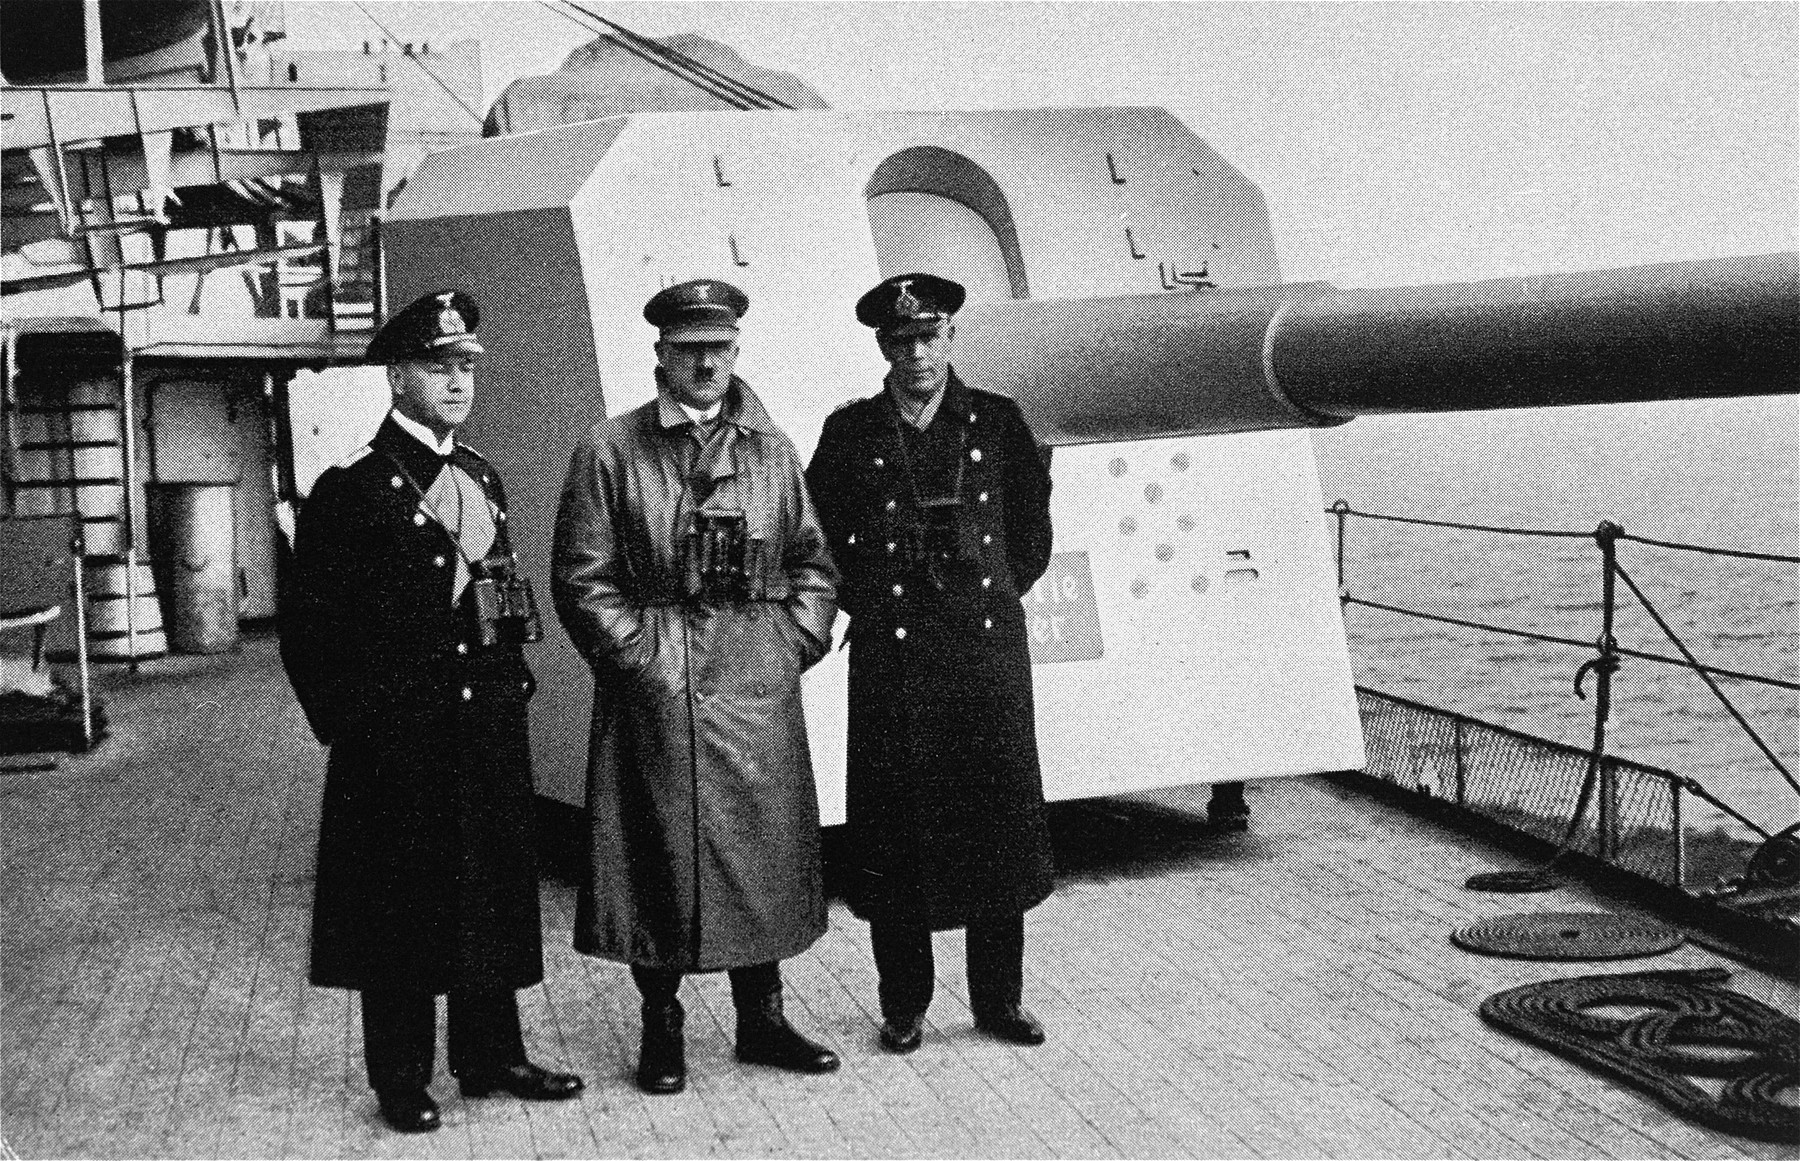 During the inspection of the Deutschland battleship